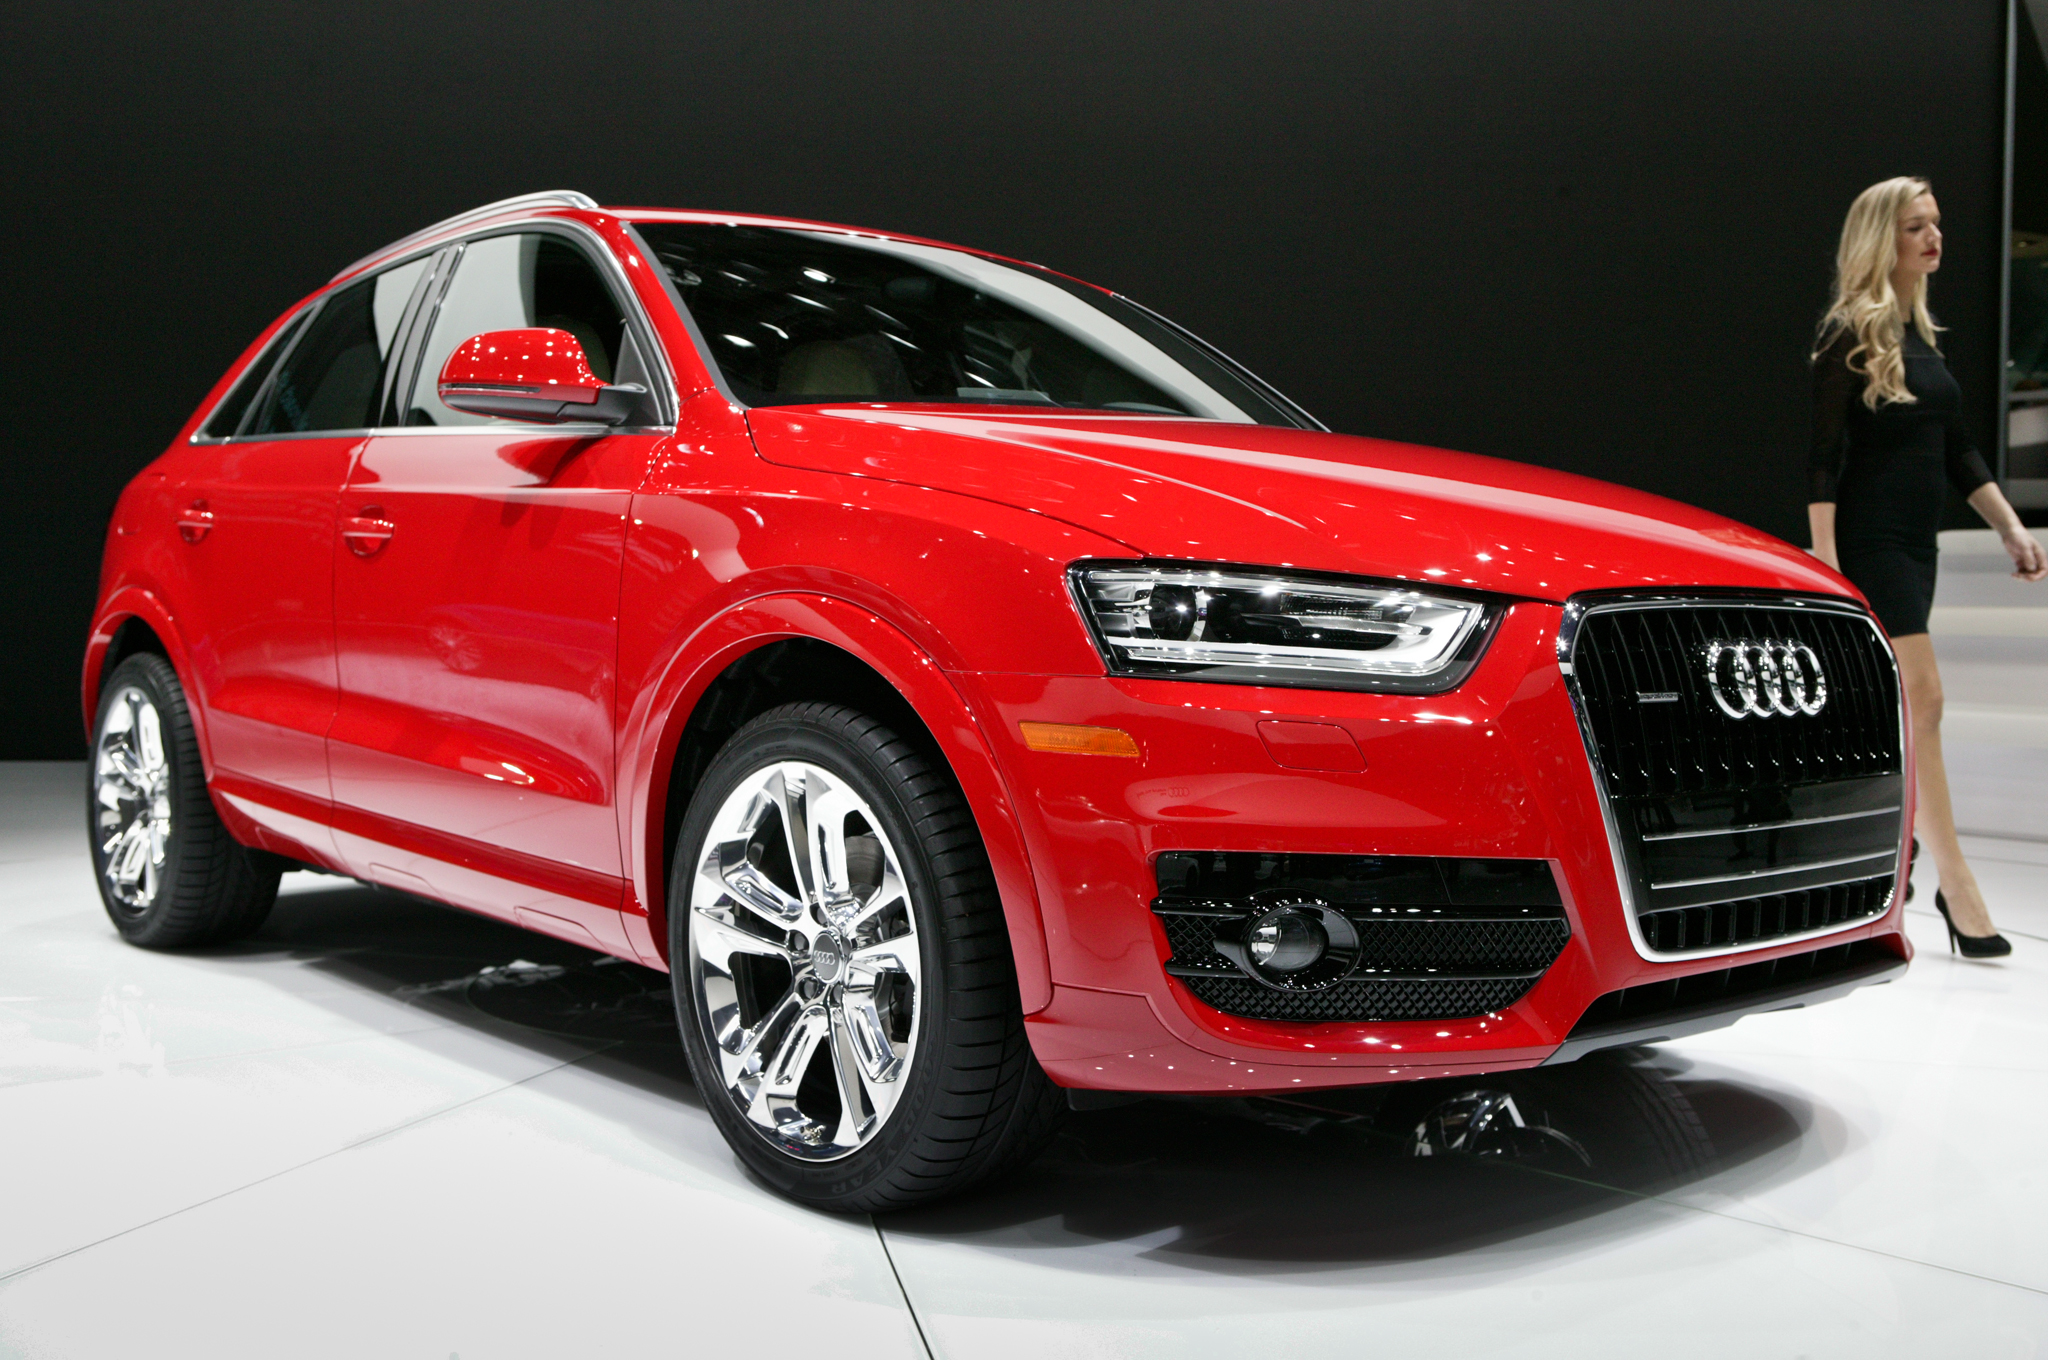 2015 Audi Q3 Red Exterior View (Photo 13 of 21)